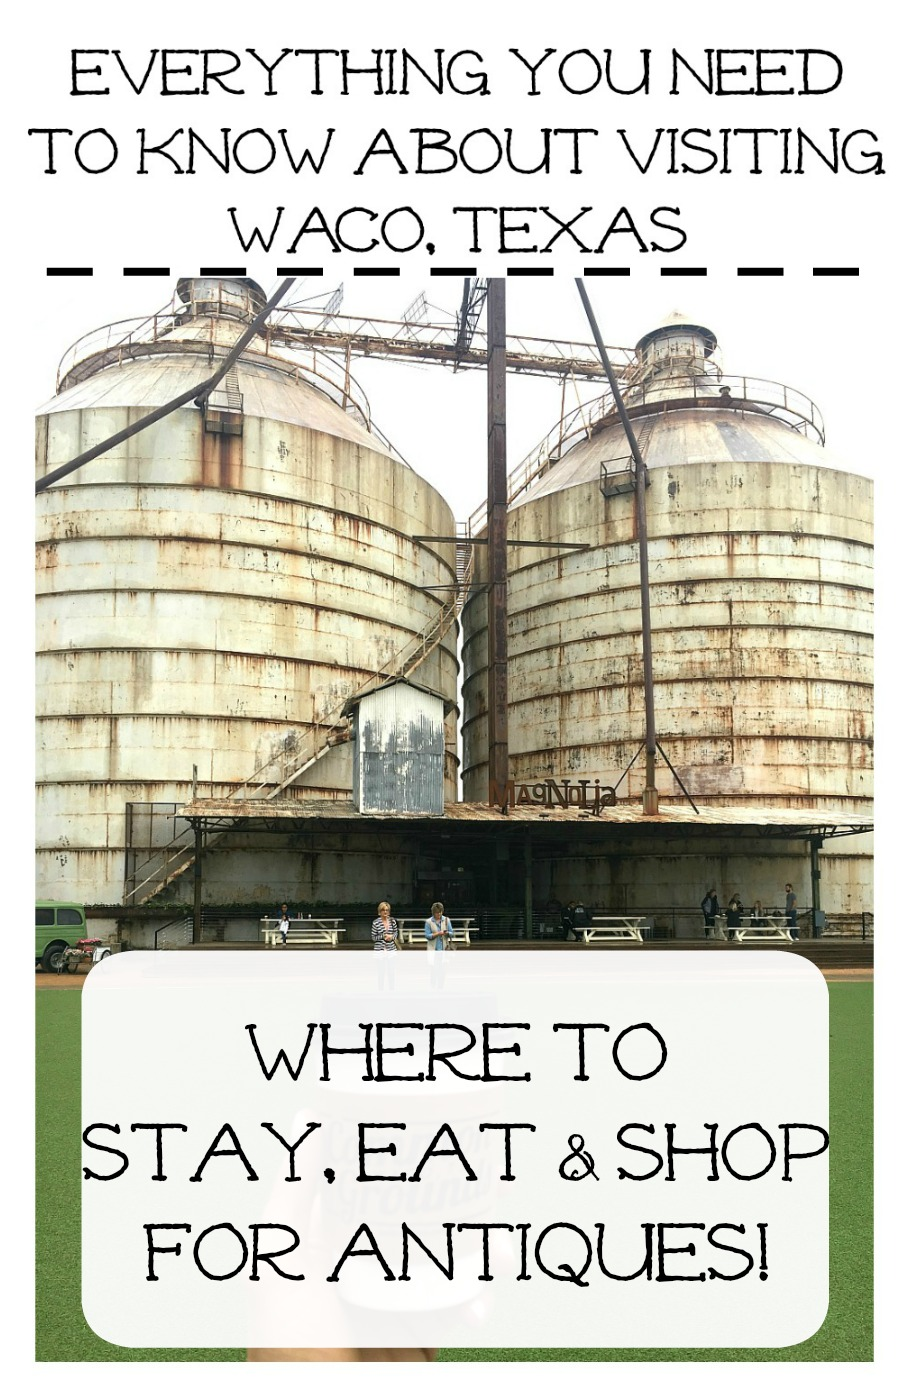 Everything you need to know about visiting Waco, Texas